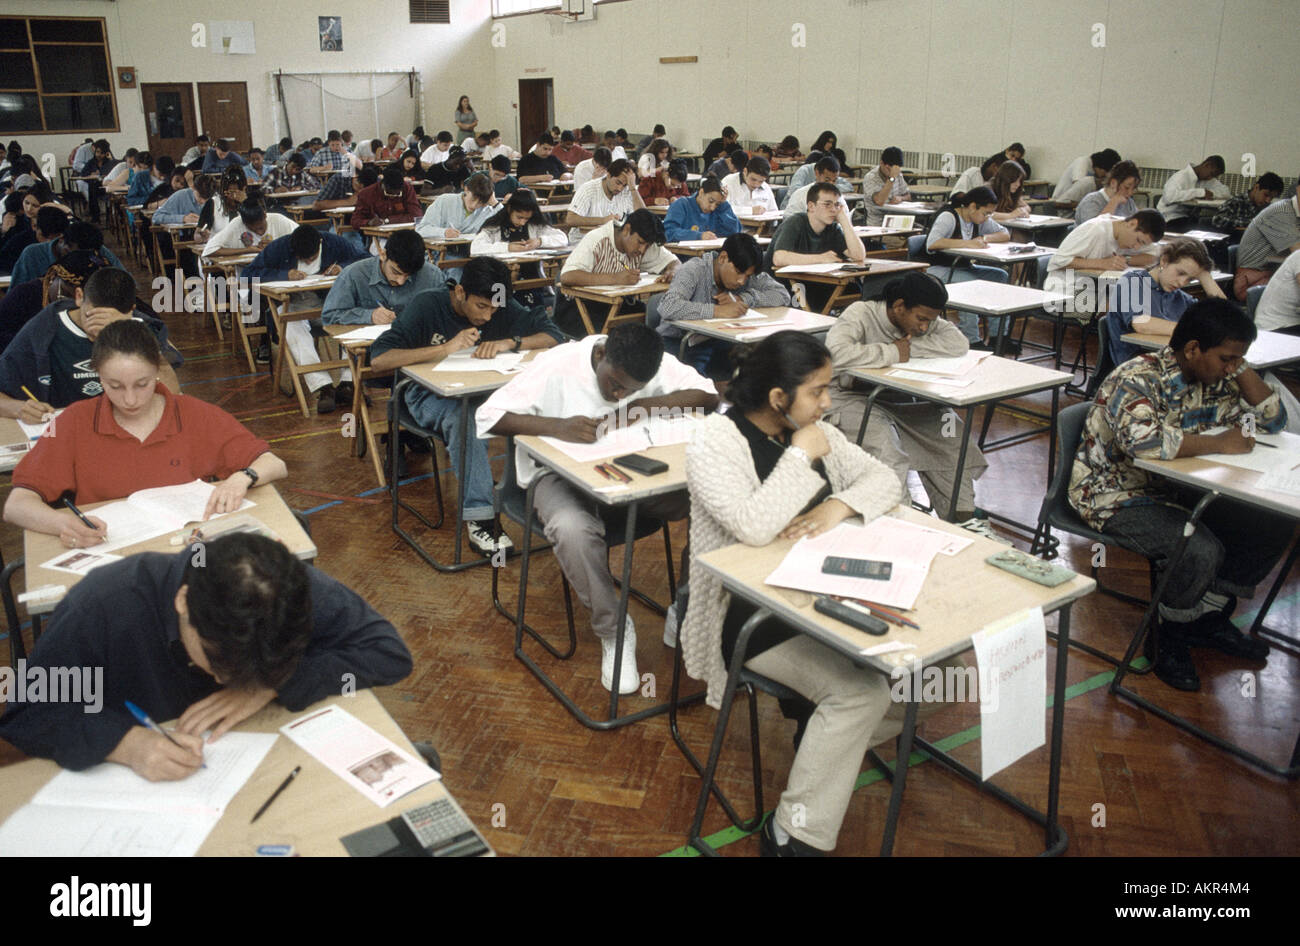 A-Level exams - Stock Image